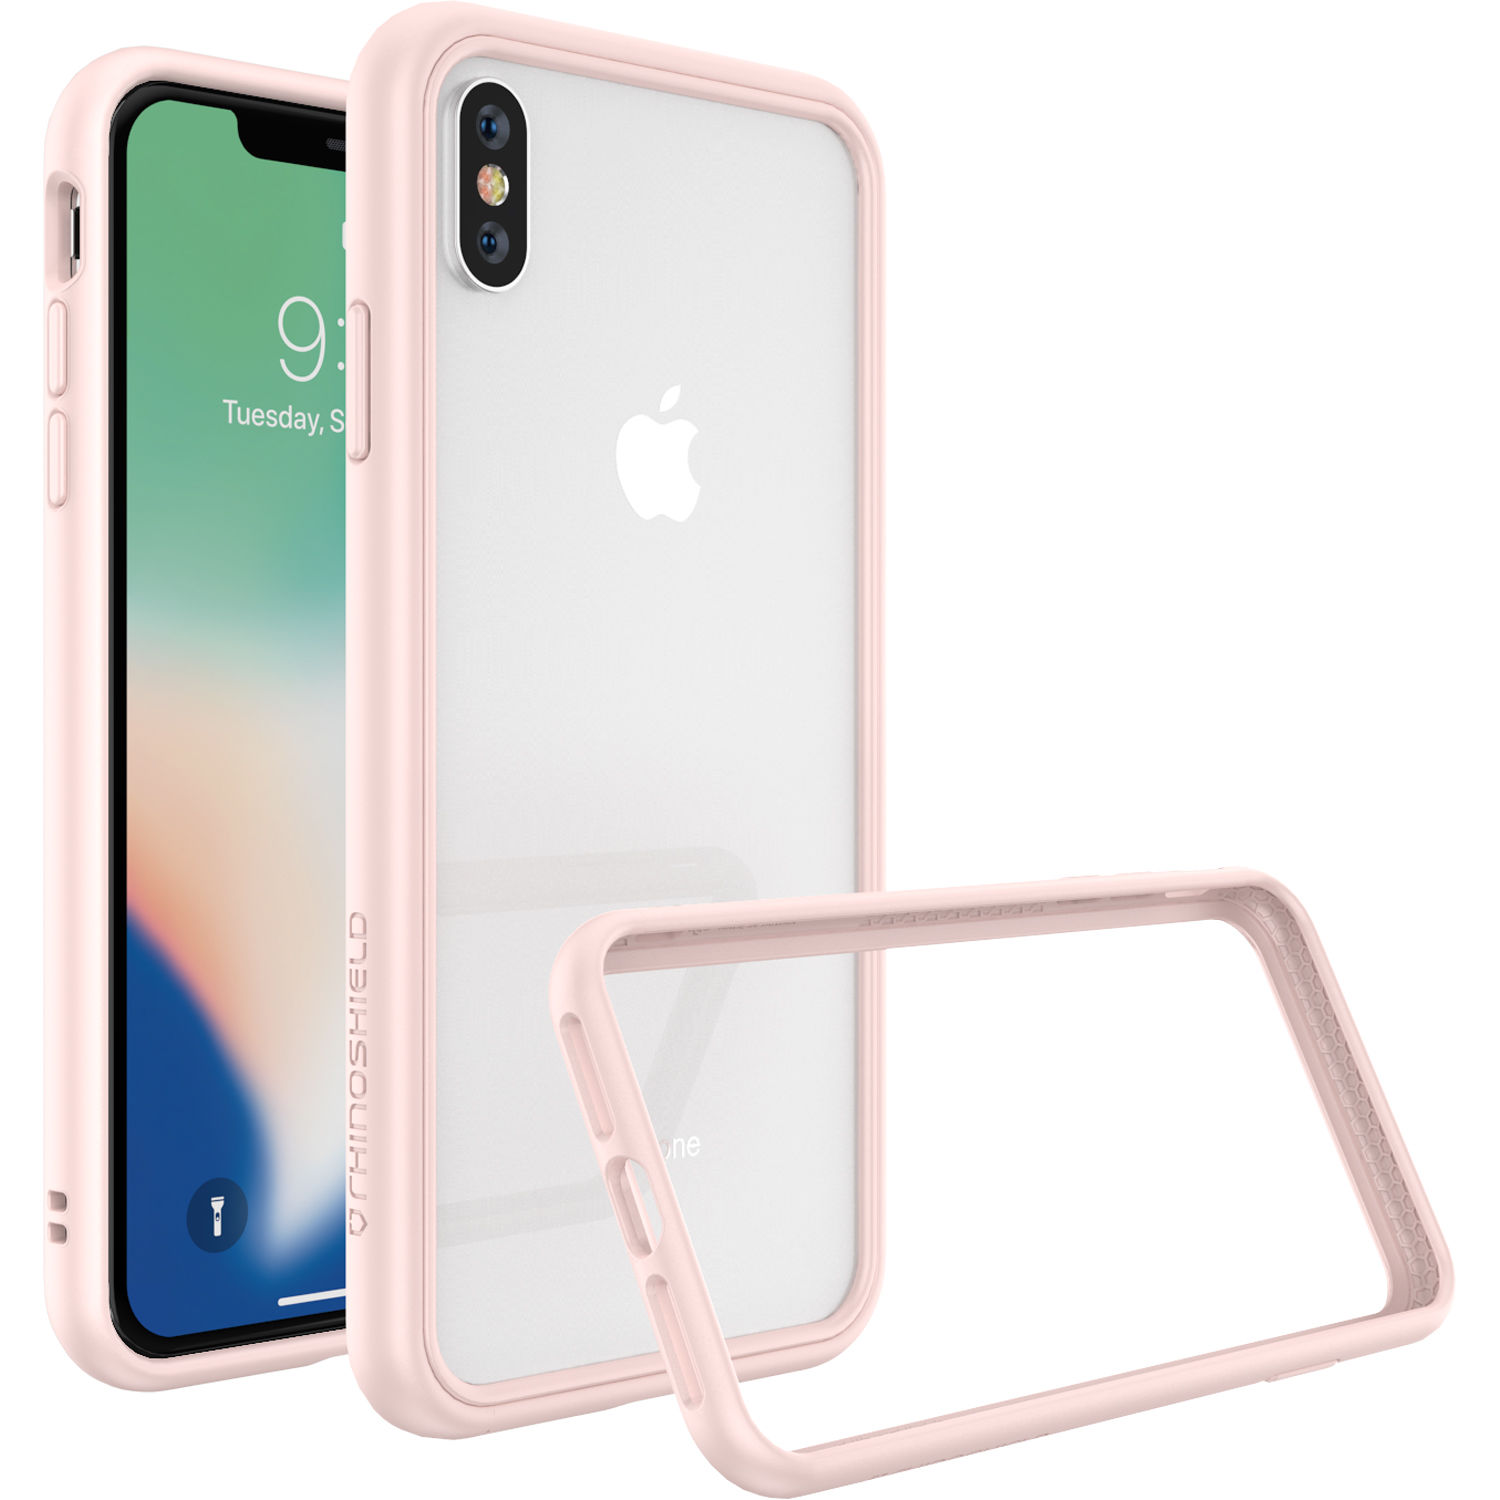 new arrival 7cd20 7a452 RhinoShield Mod NX iPhone XS Max Case (Blush Pink)